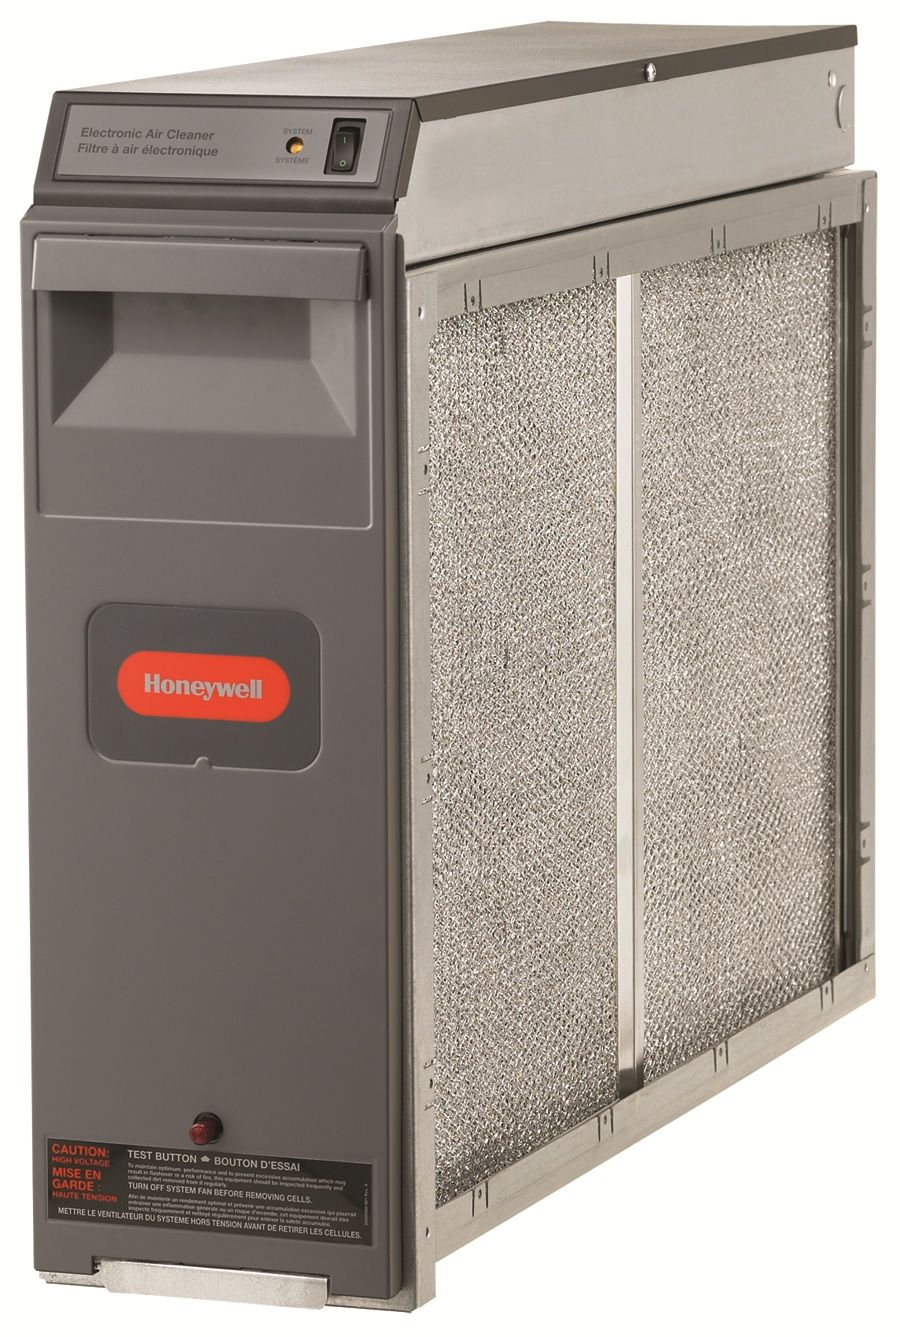 Honeywell F300 Air Cleaner Indoor air quality, Home